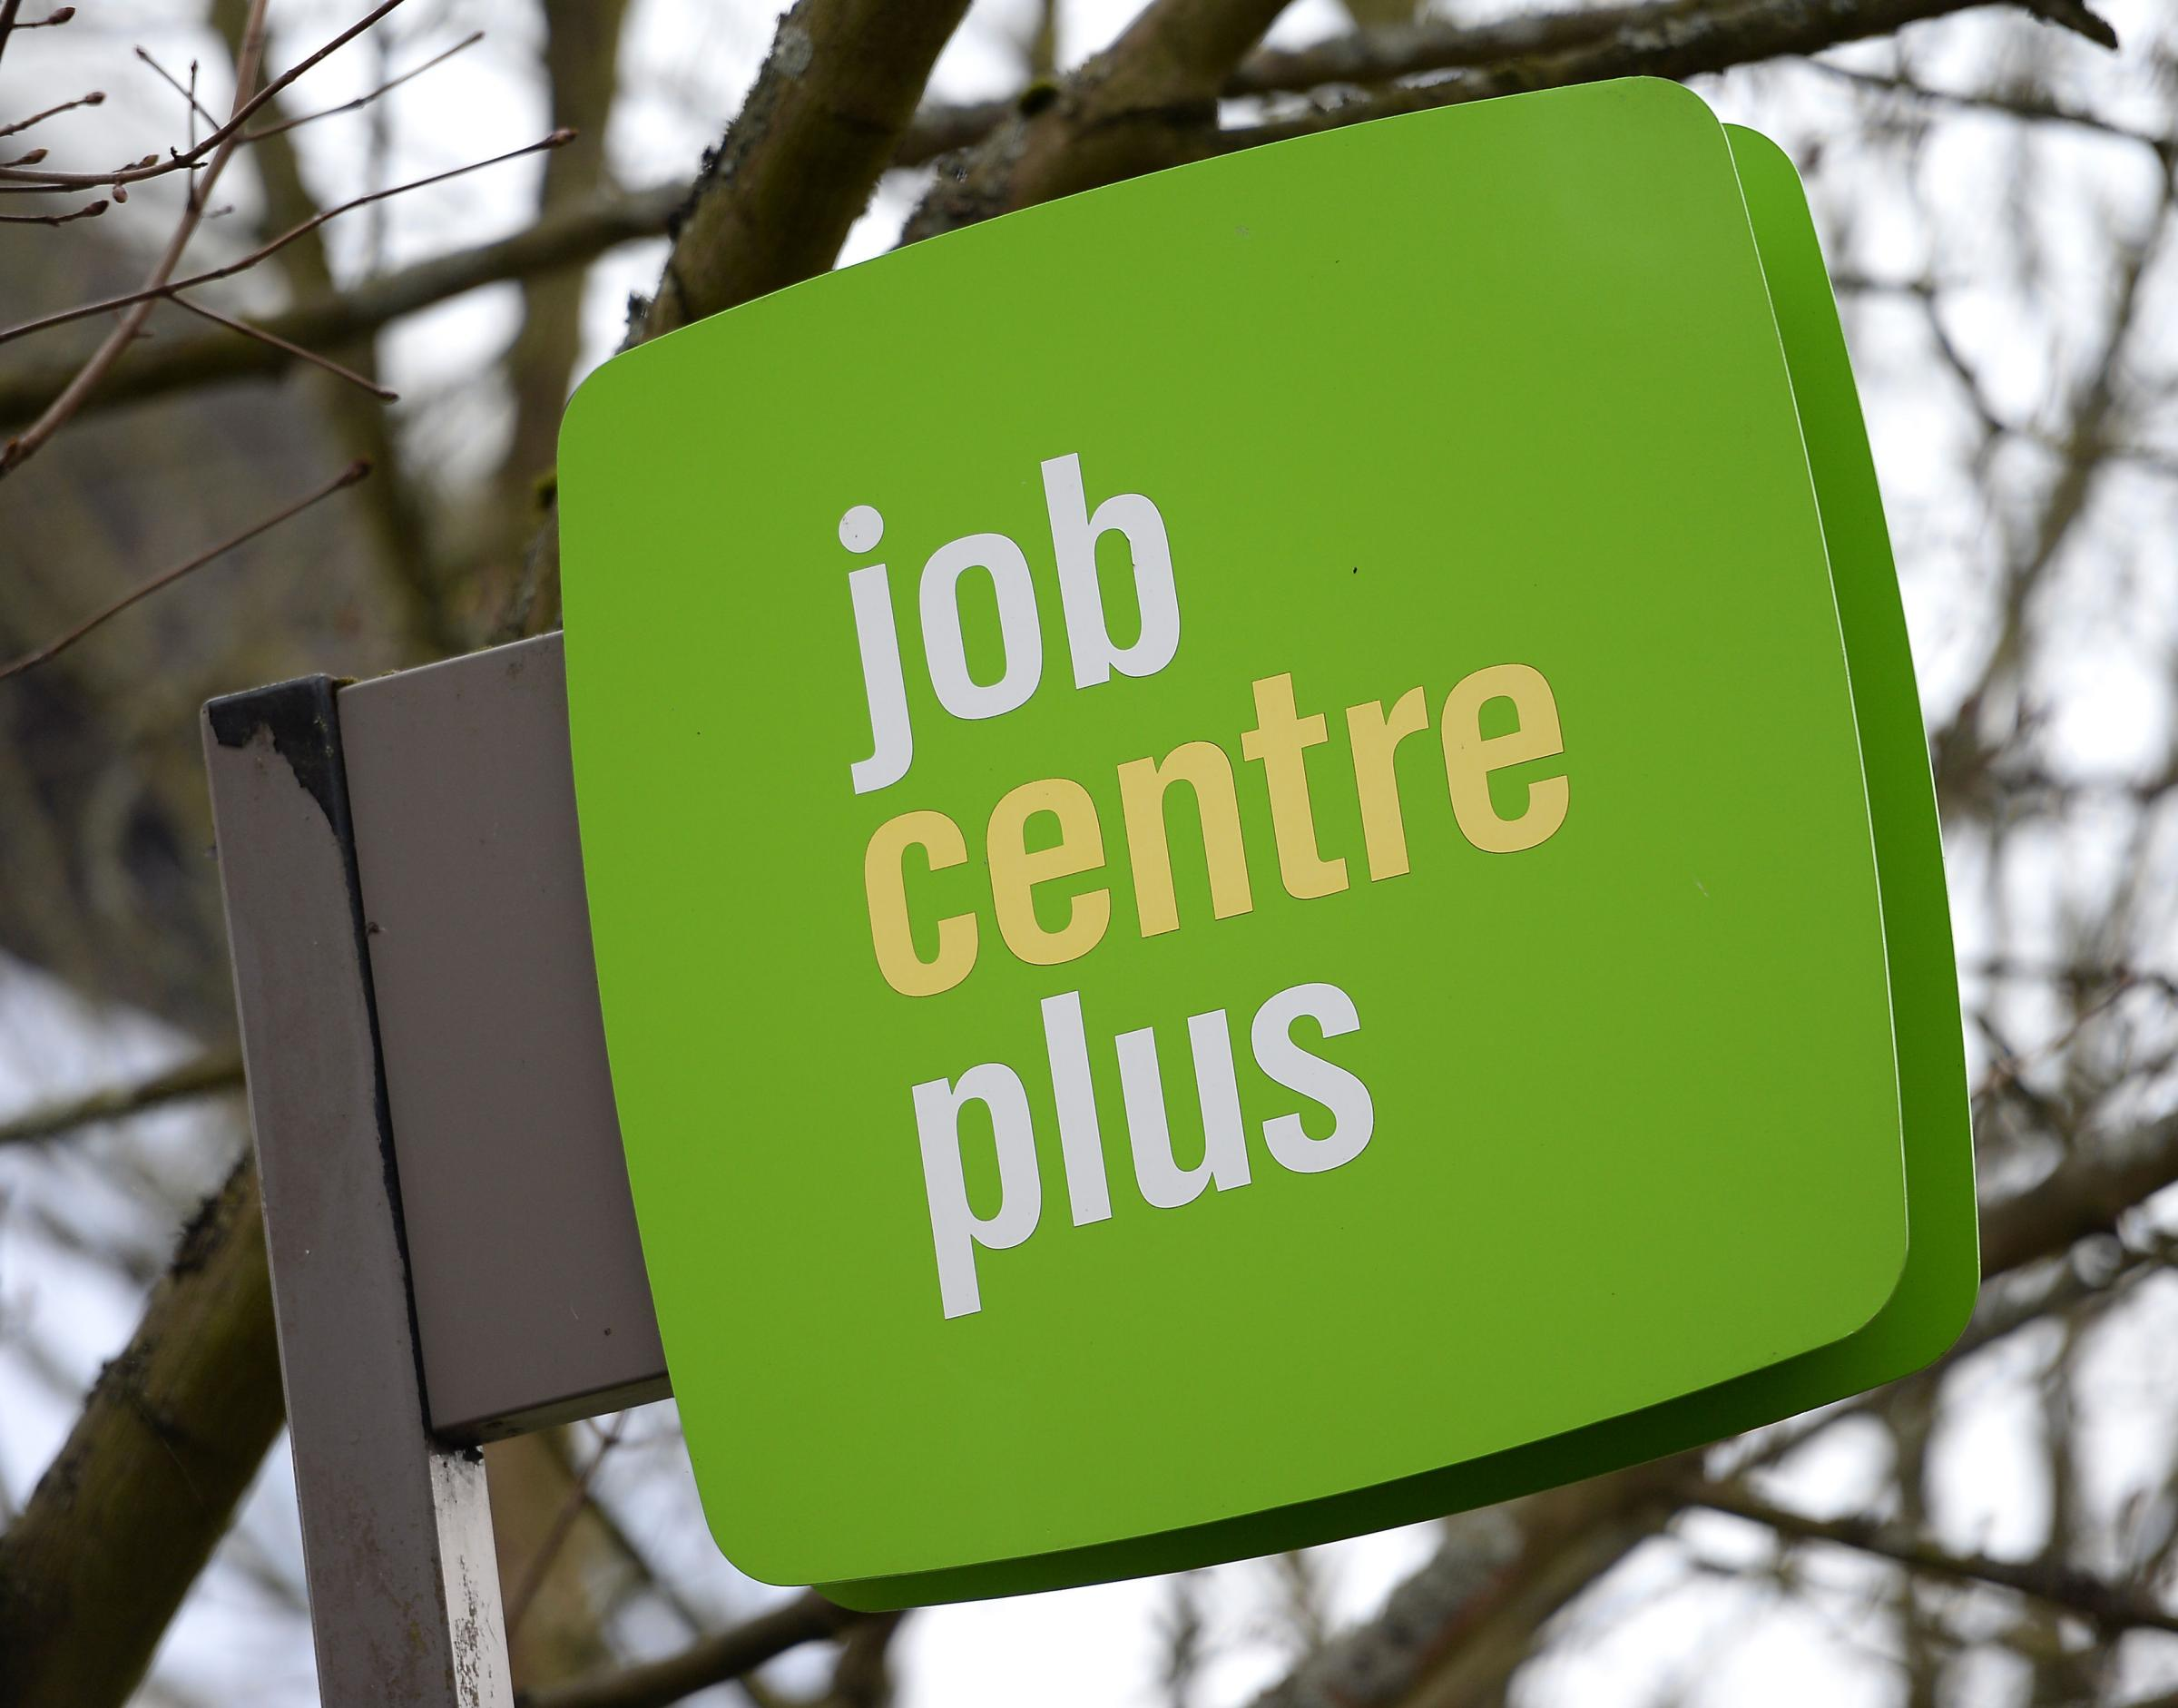 Bradford district unemployment falls below 10,000 mark for first time in seven years.